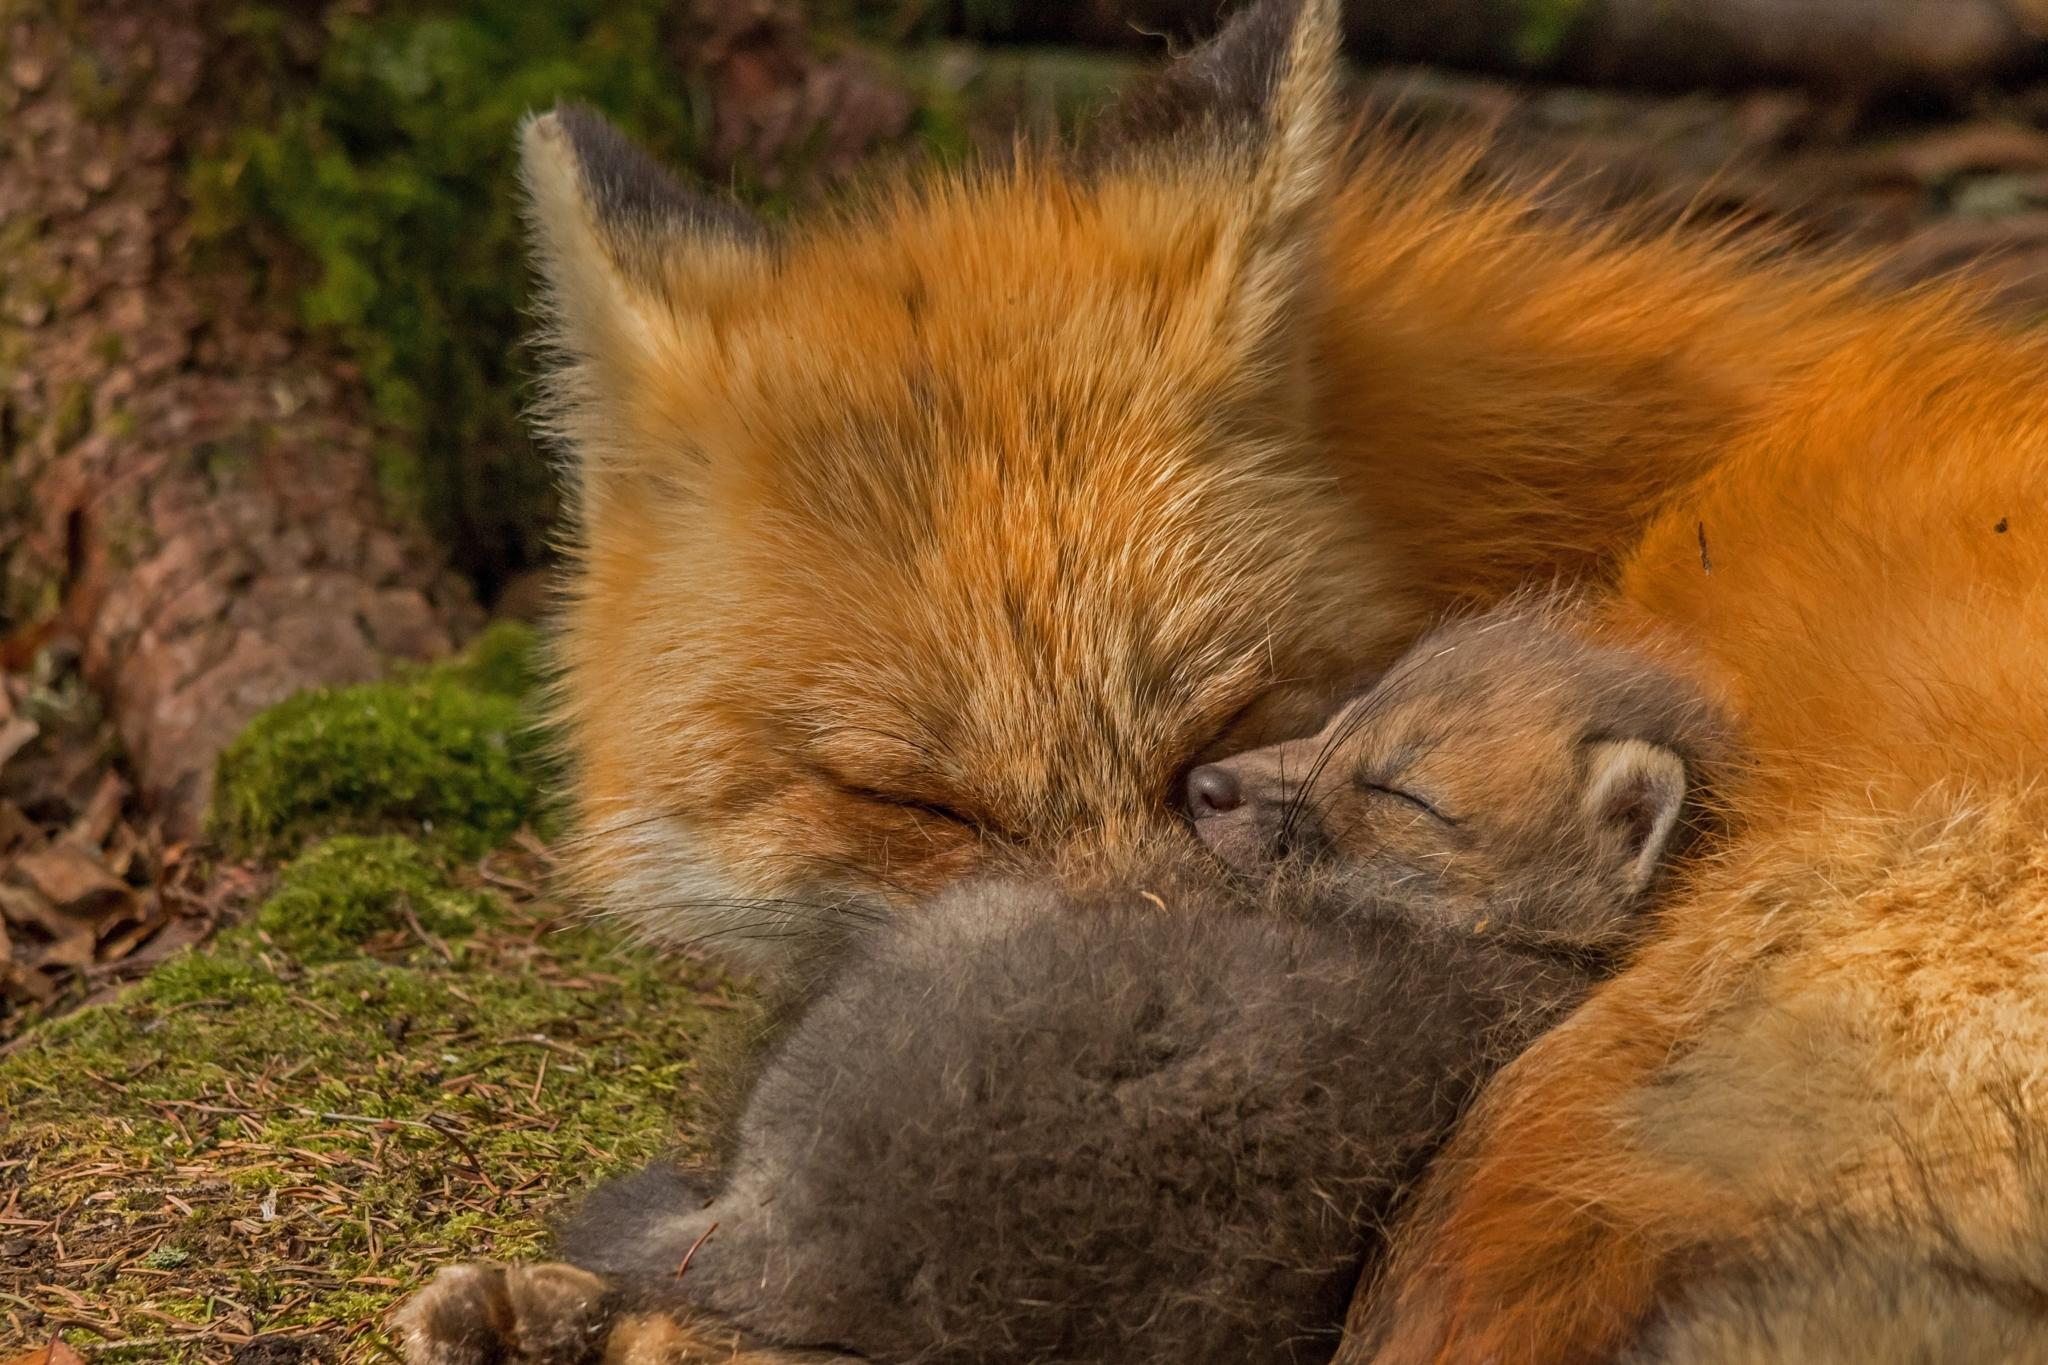 The Tired Foxes by Steve Dunsford